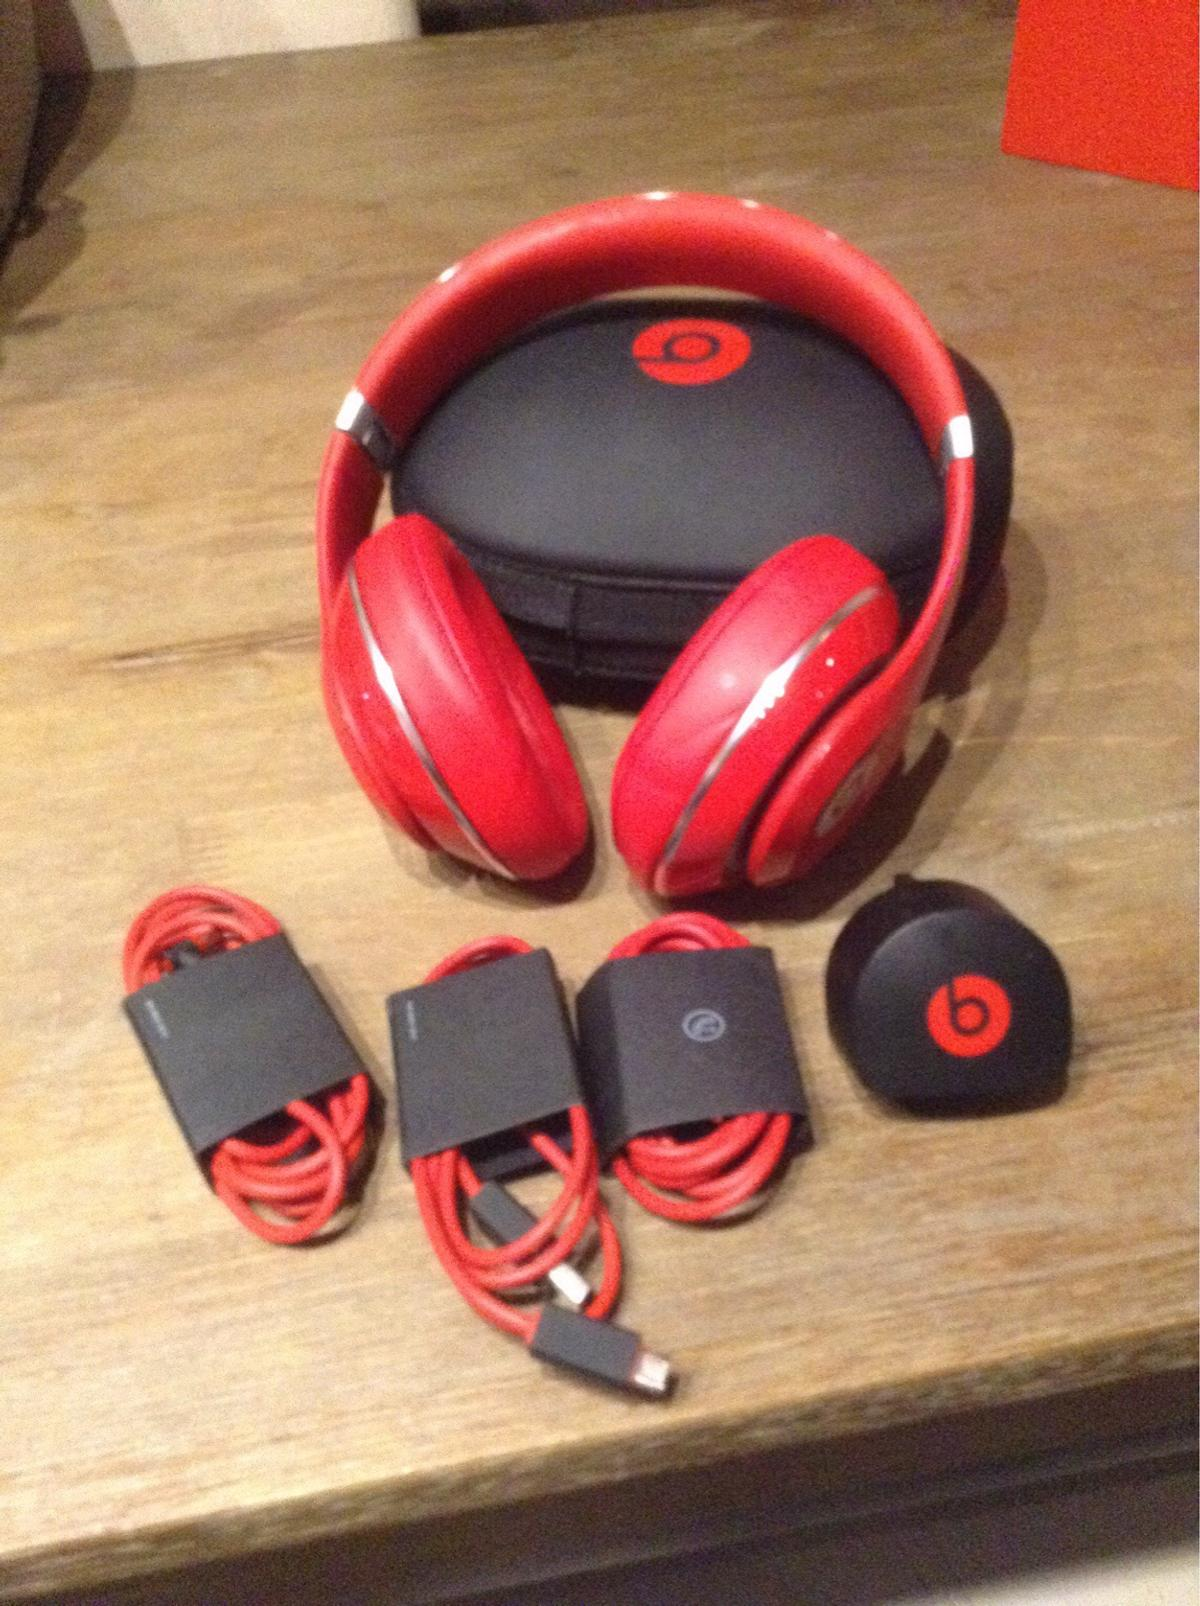 Authentic beats studio 2 0 red in DA11 Gravesham for £100 00